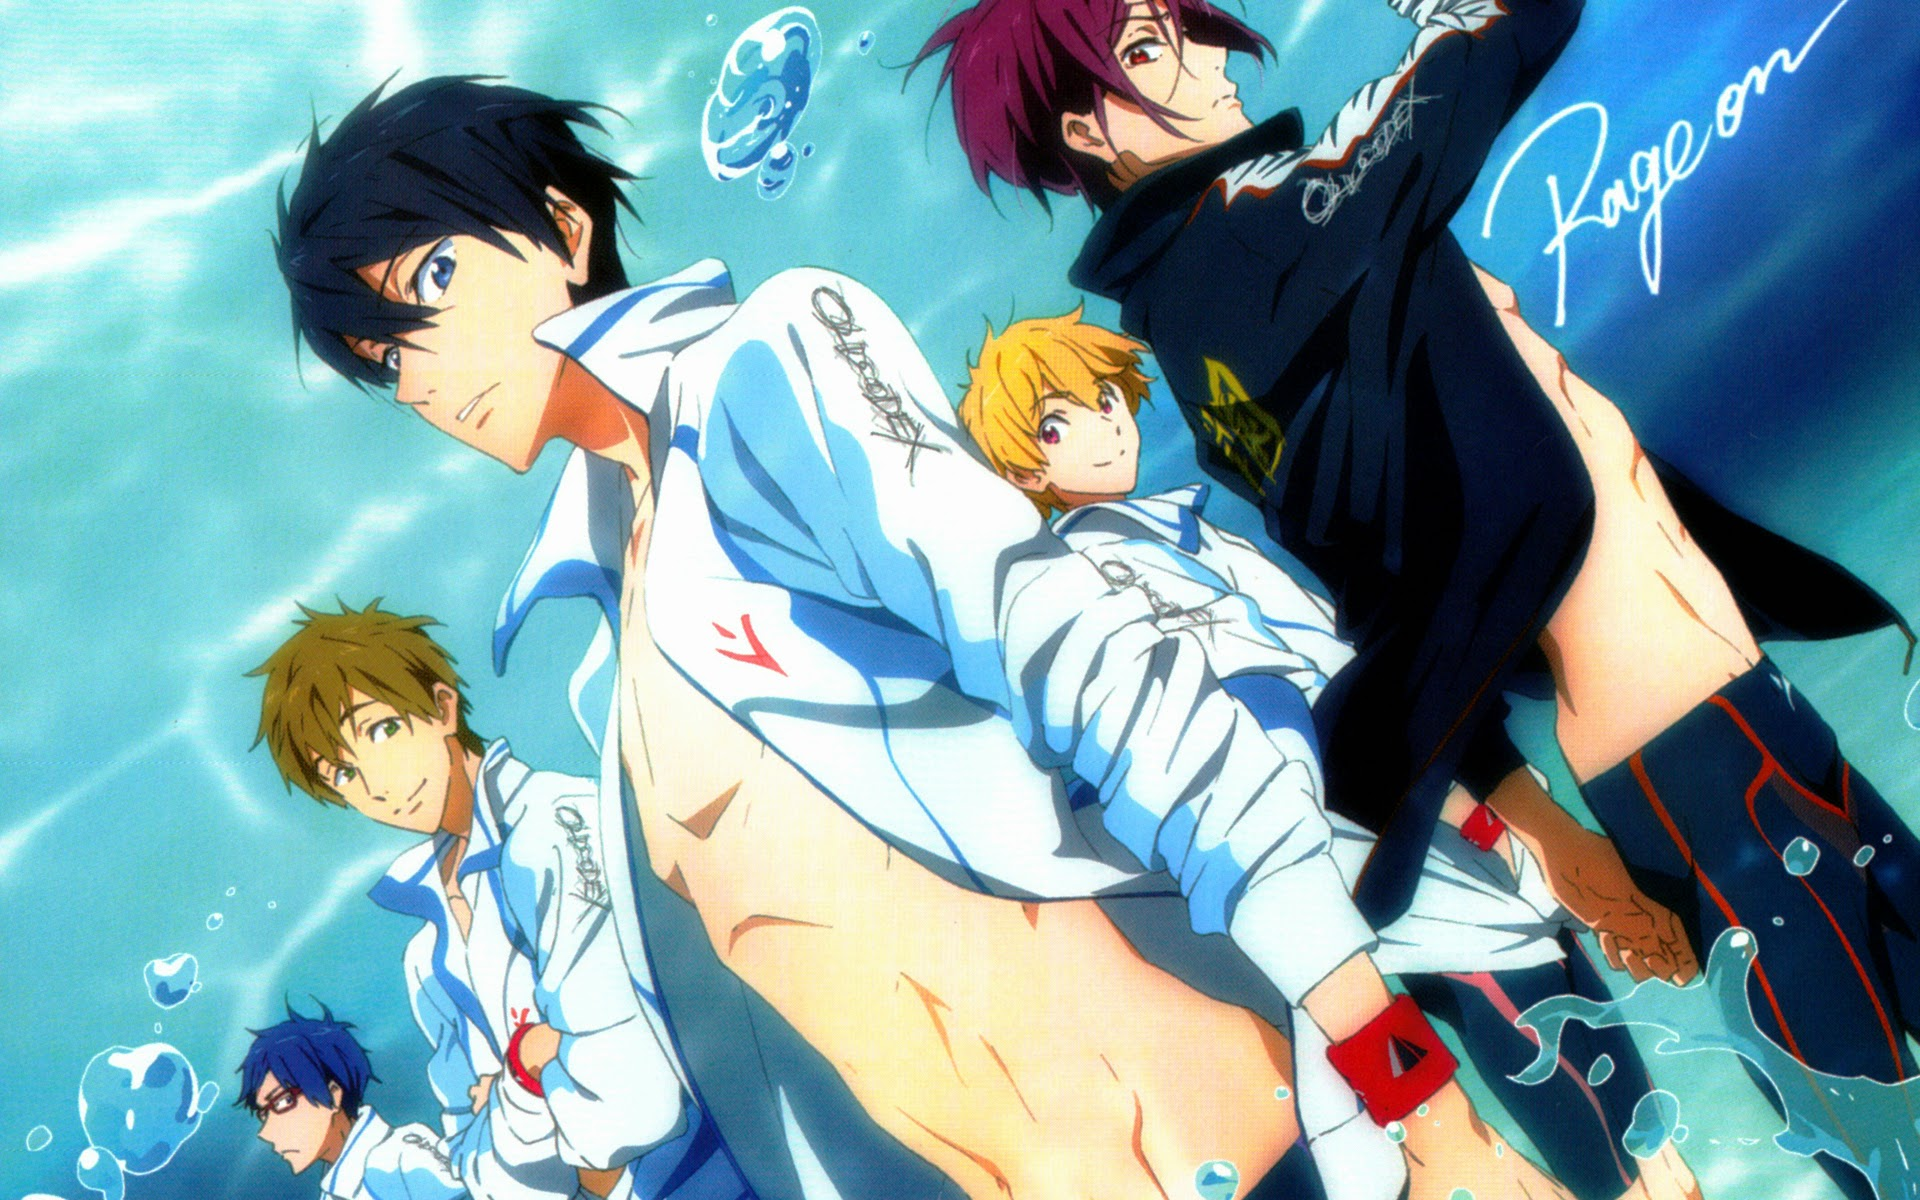 Free Download Iwatobi Swim Club Anime Boys Characters Nagisa Hazuki Rin 1920x1200 For Your Desktop Mobile Tablet Explore 50 Free Anime Desktop Wallpaper Free Anime Pictures And Wallpapers Anime It was really funny and took till 6am. free download iwatobi swim club anime